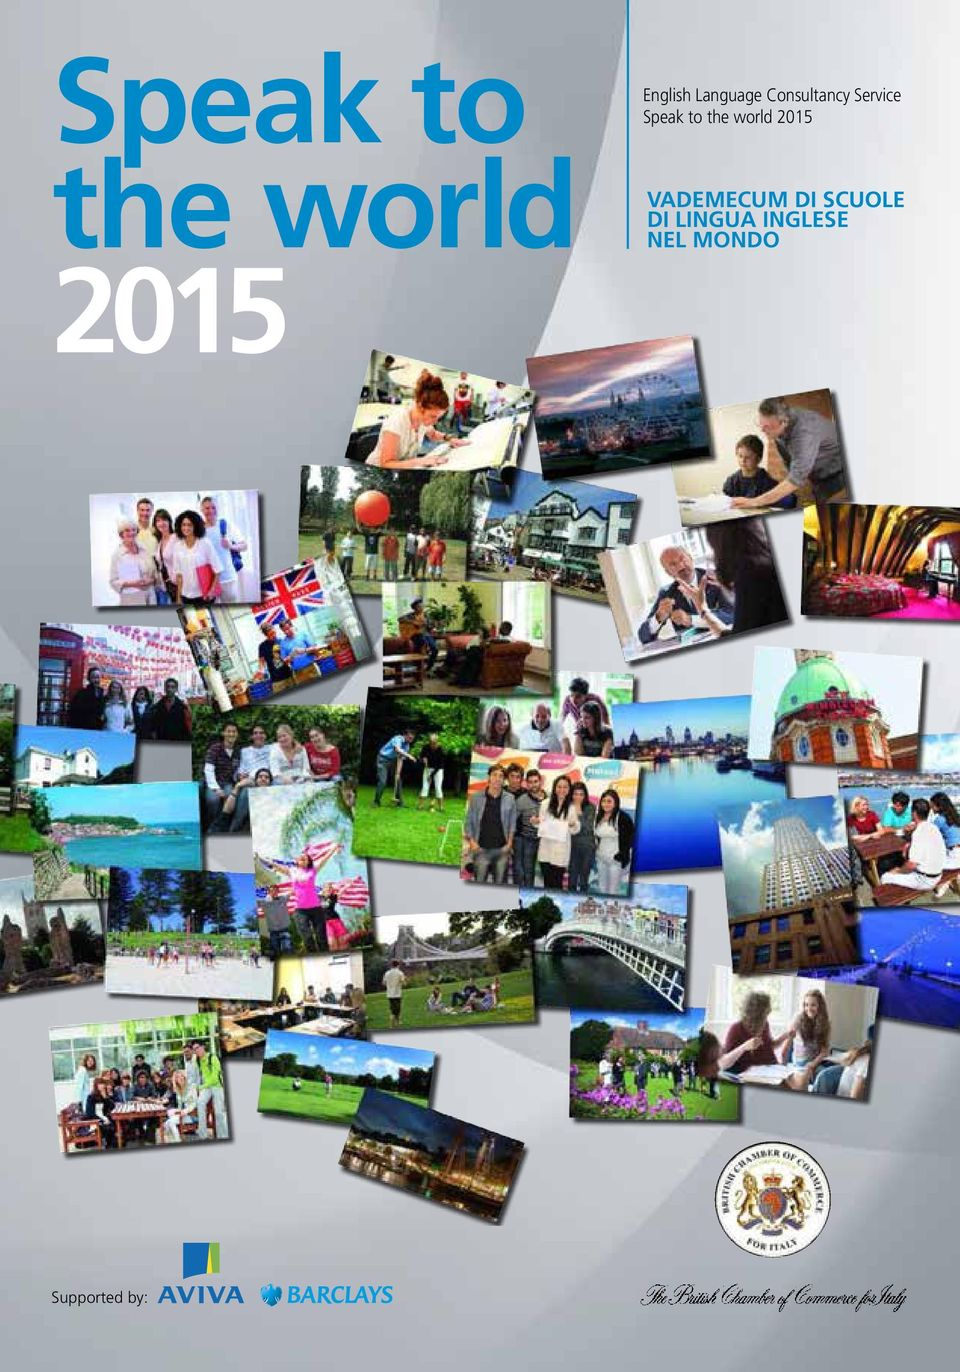 to the world 2015 VADEMECUM DI